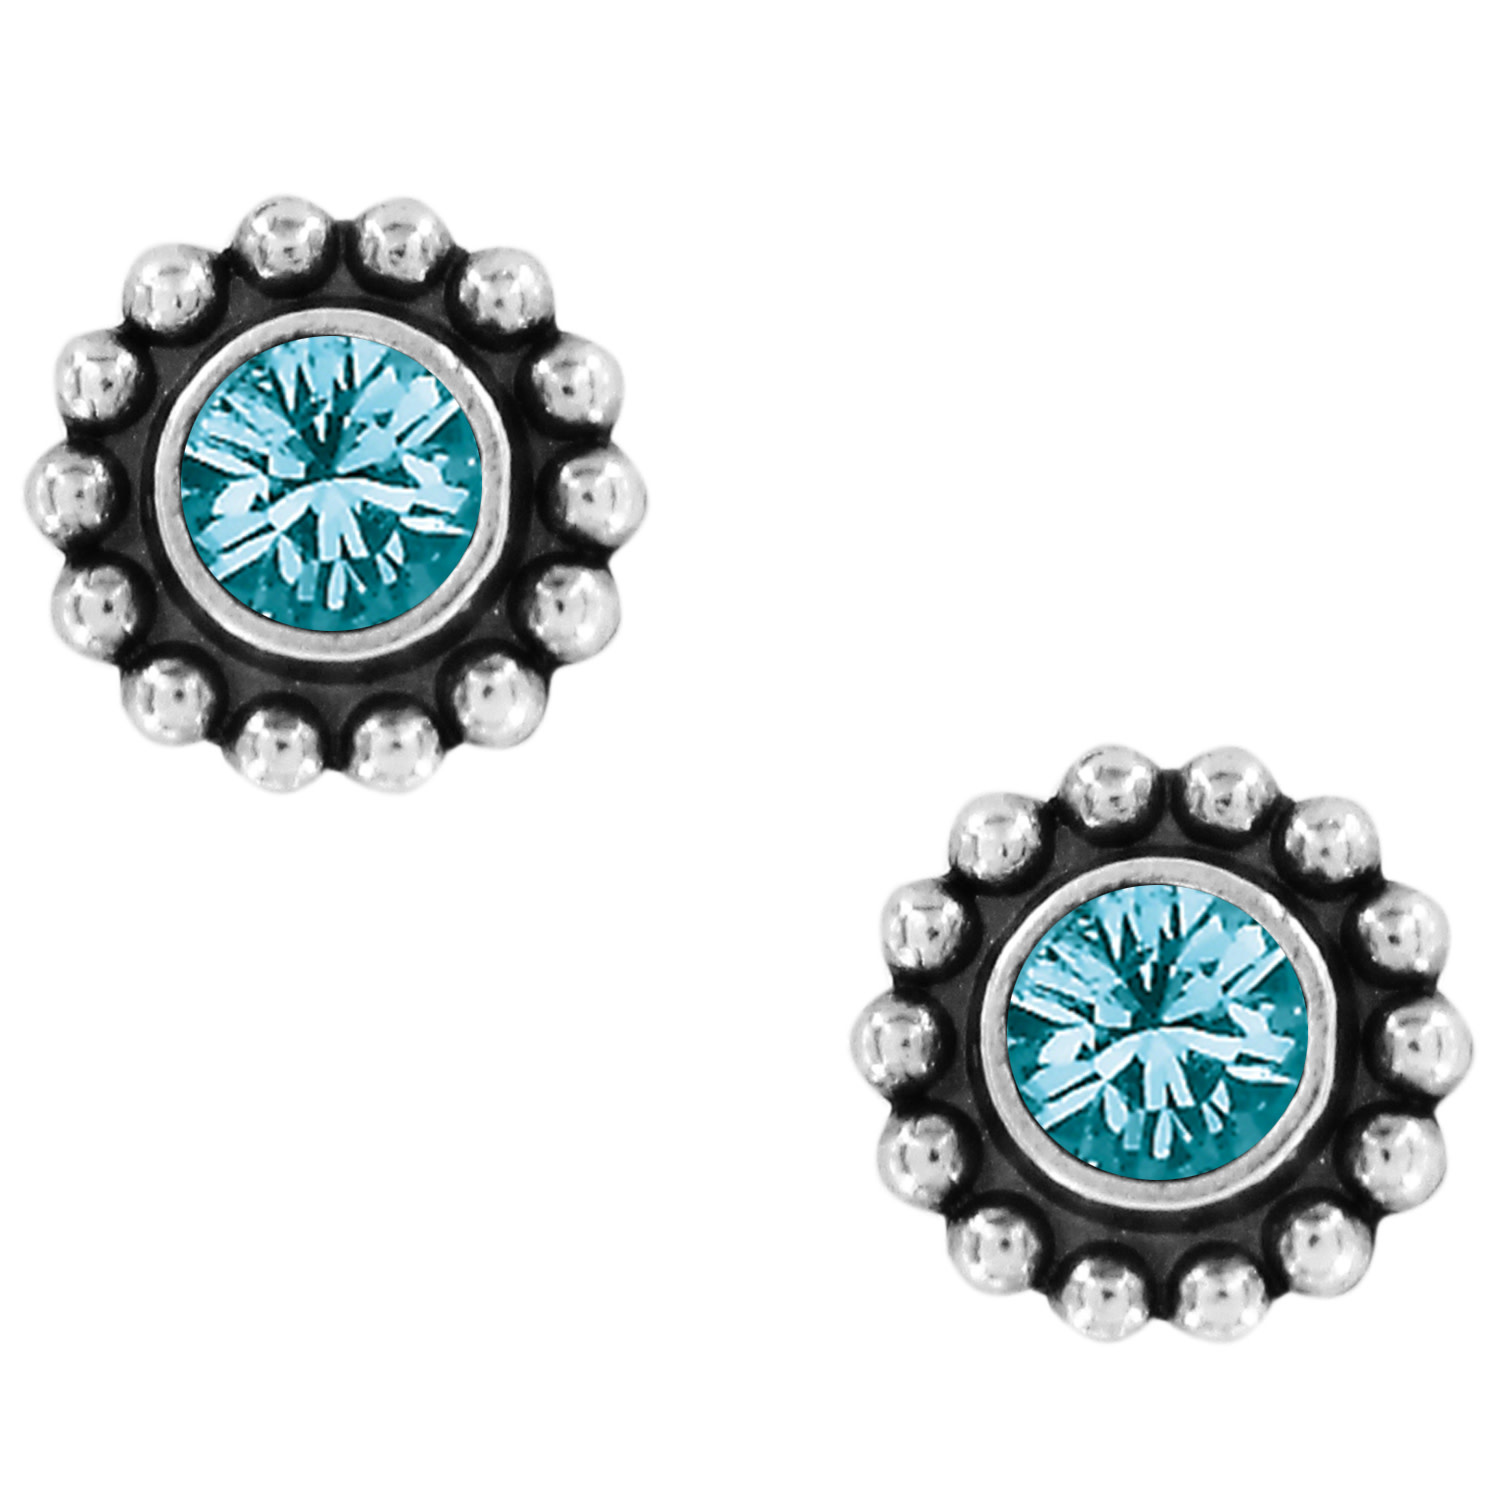 BRIGHTON TWINKLE BLUE ZIRCON MINI POST EARRINGS